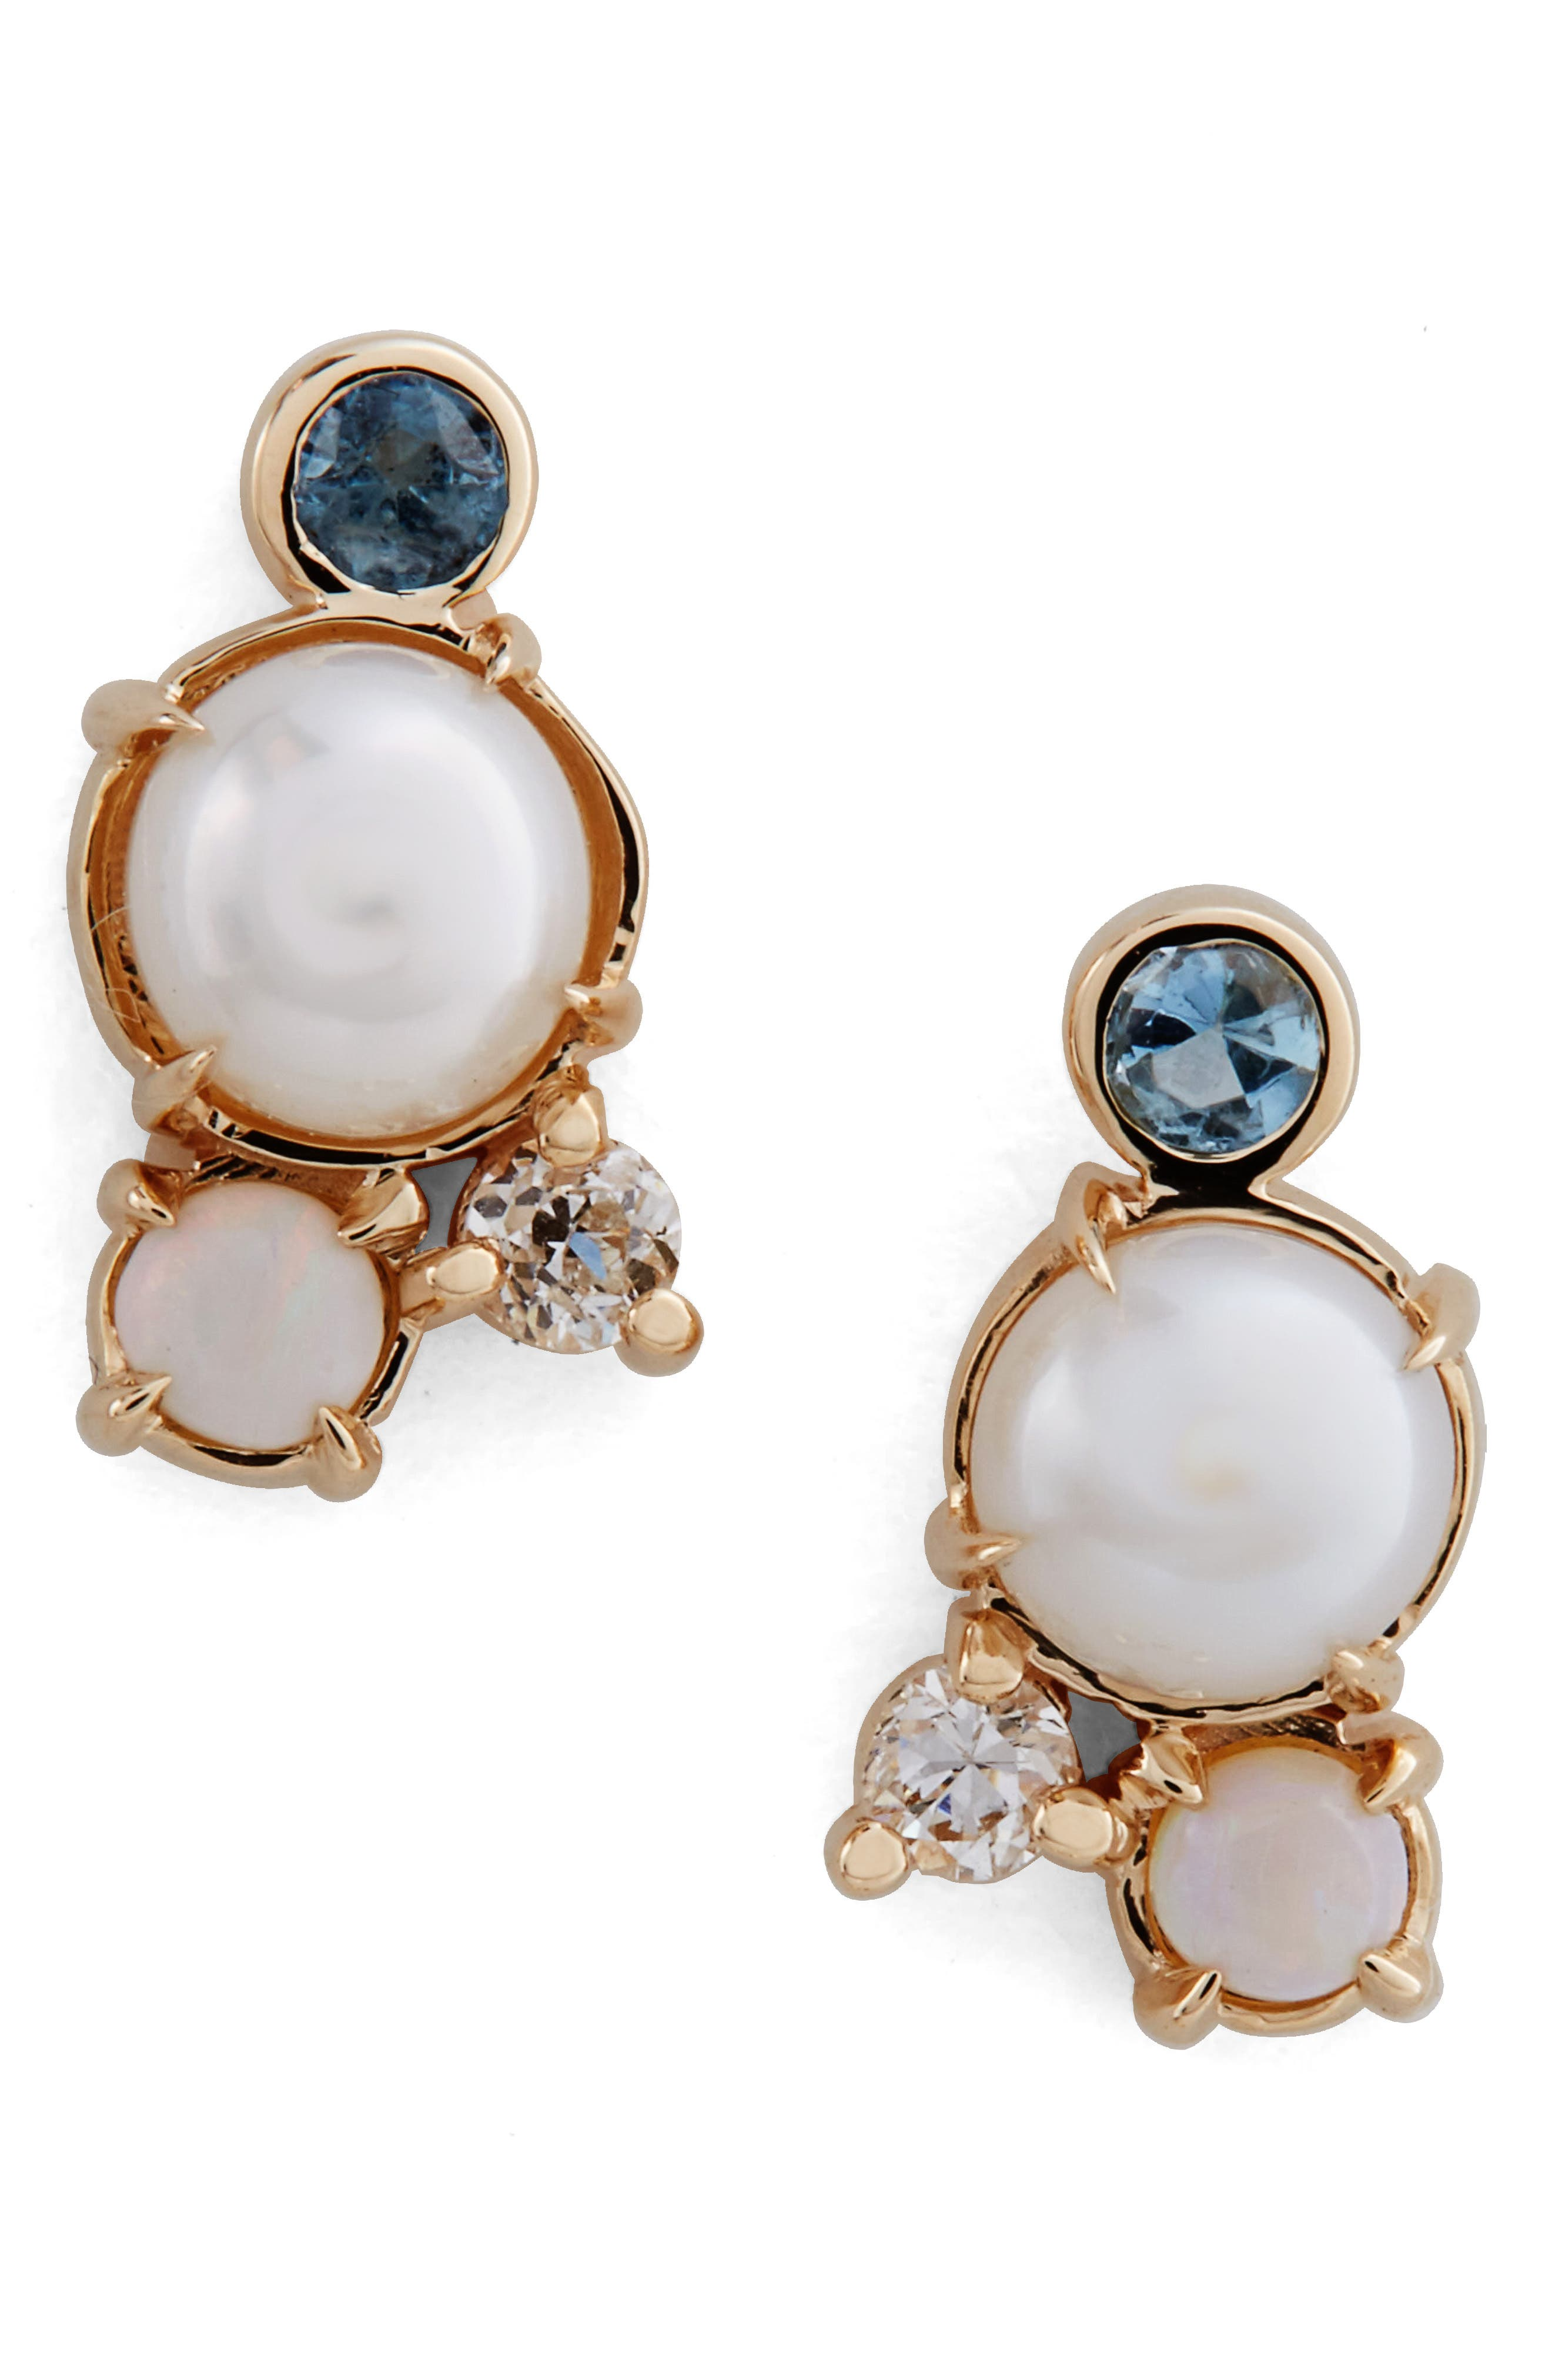 MOCIUN Pearl, Aquamarine, Opal & Diamond Earrings (Nordstrom Exclusive)